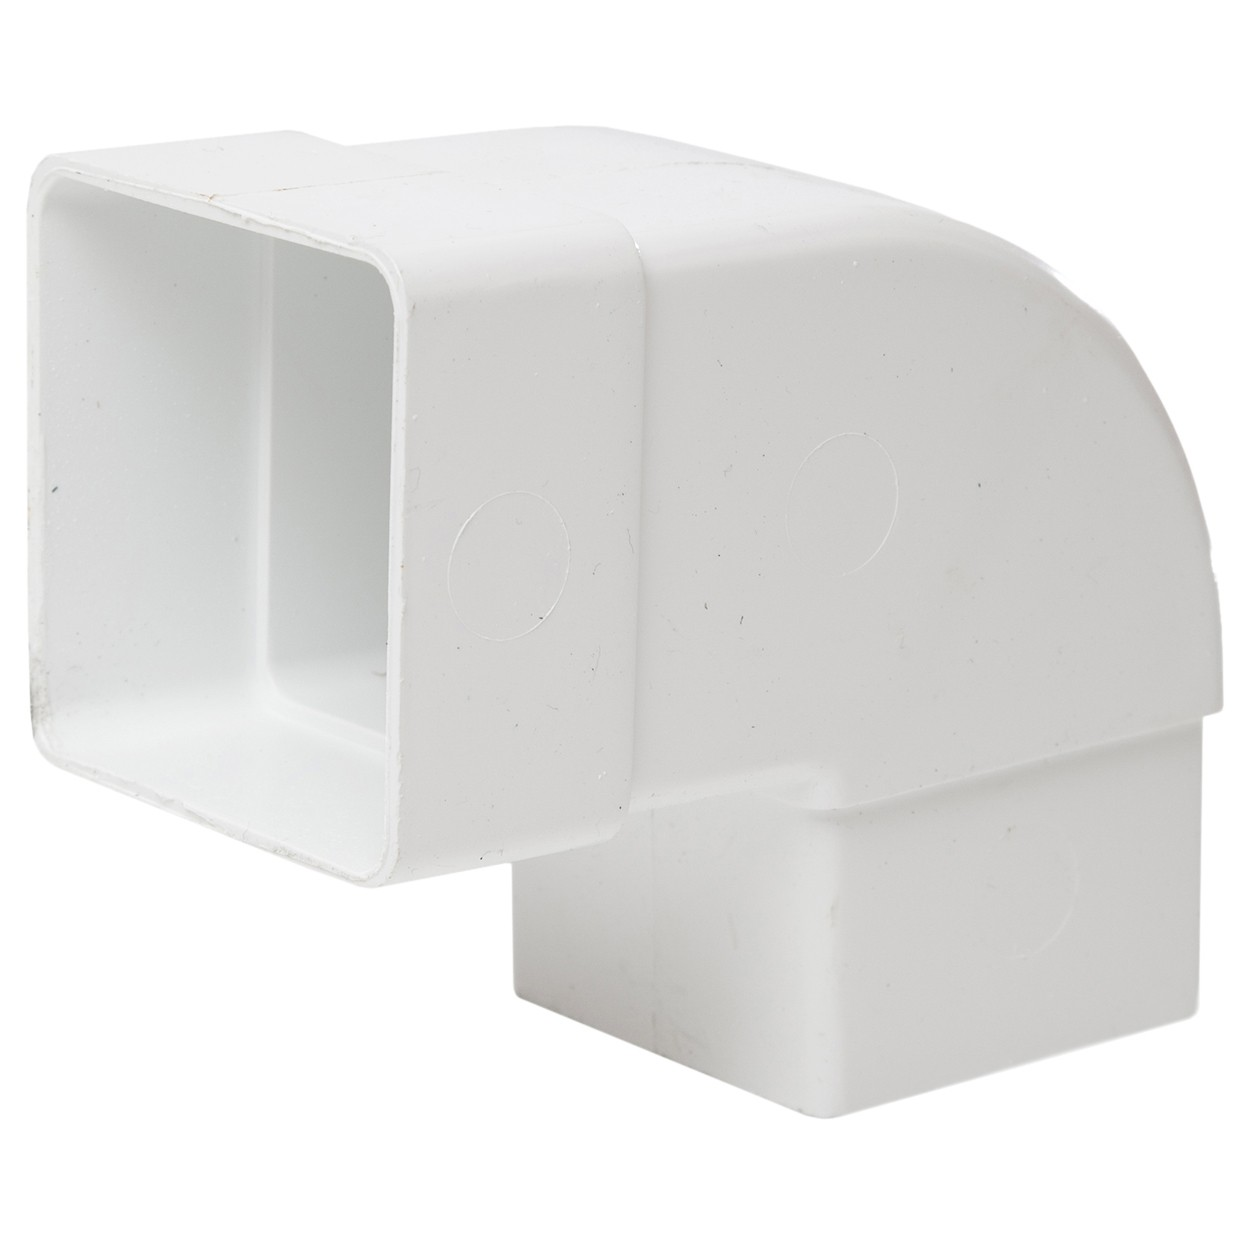 Polypipe 65mm Square Down Pipe 92.5 Degree Offset Bend - White